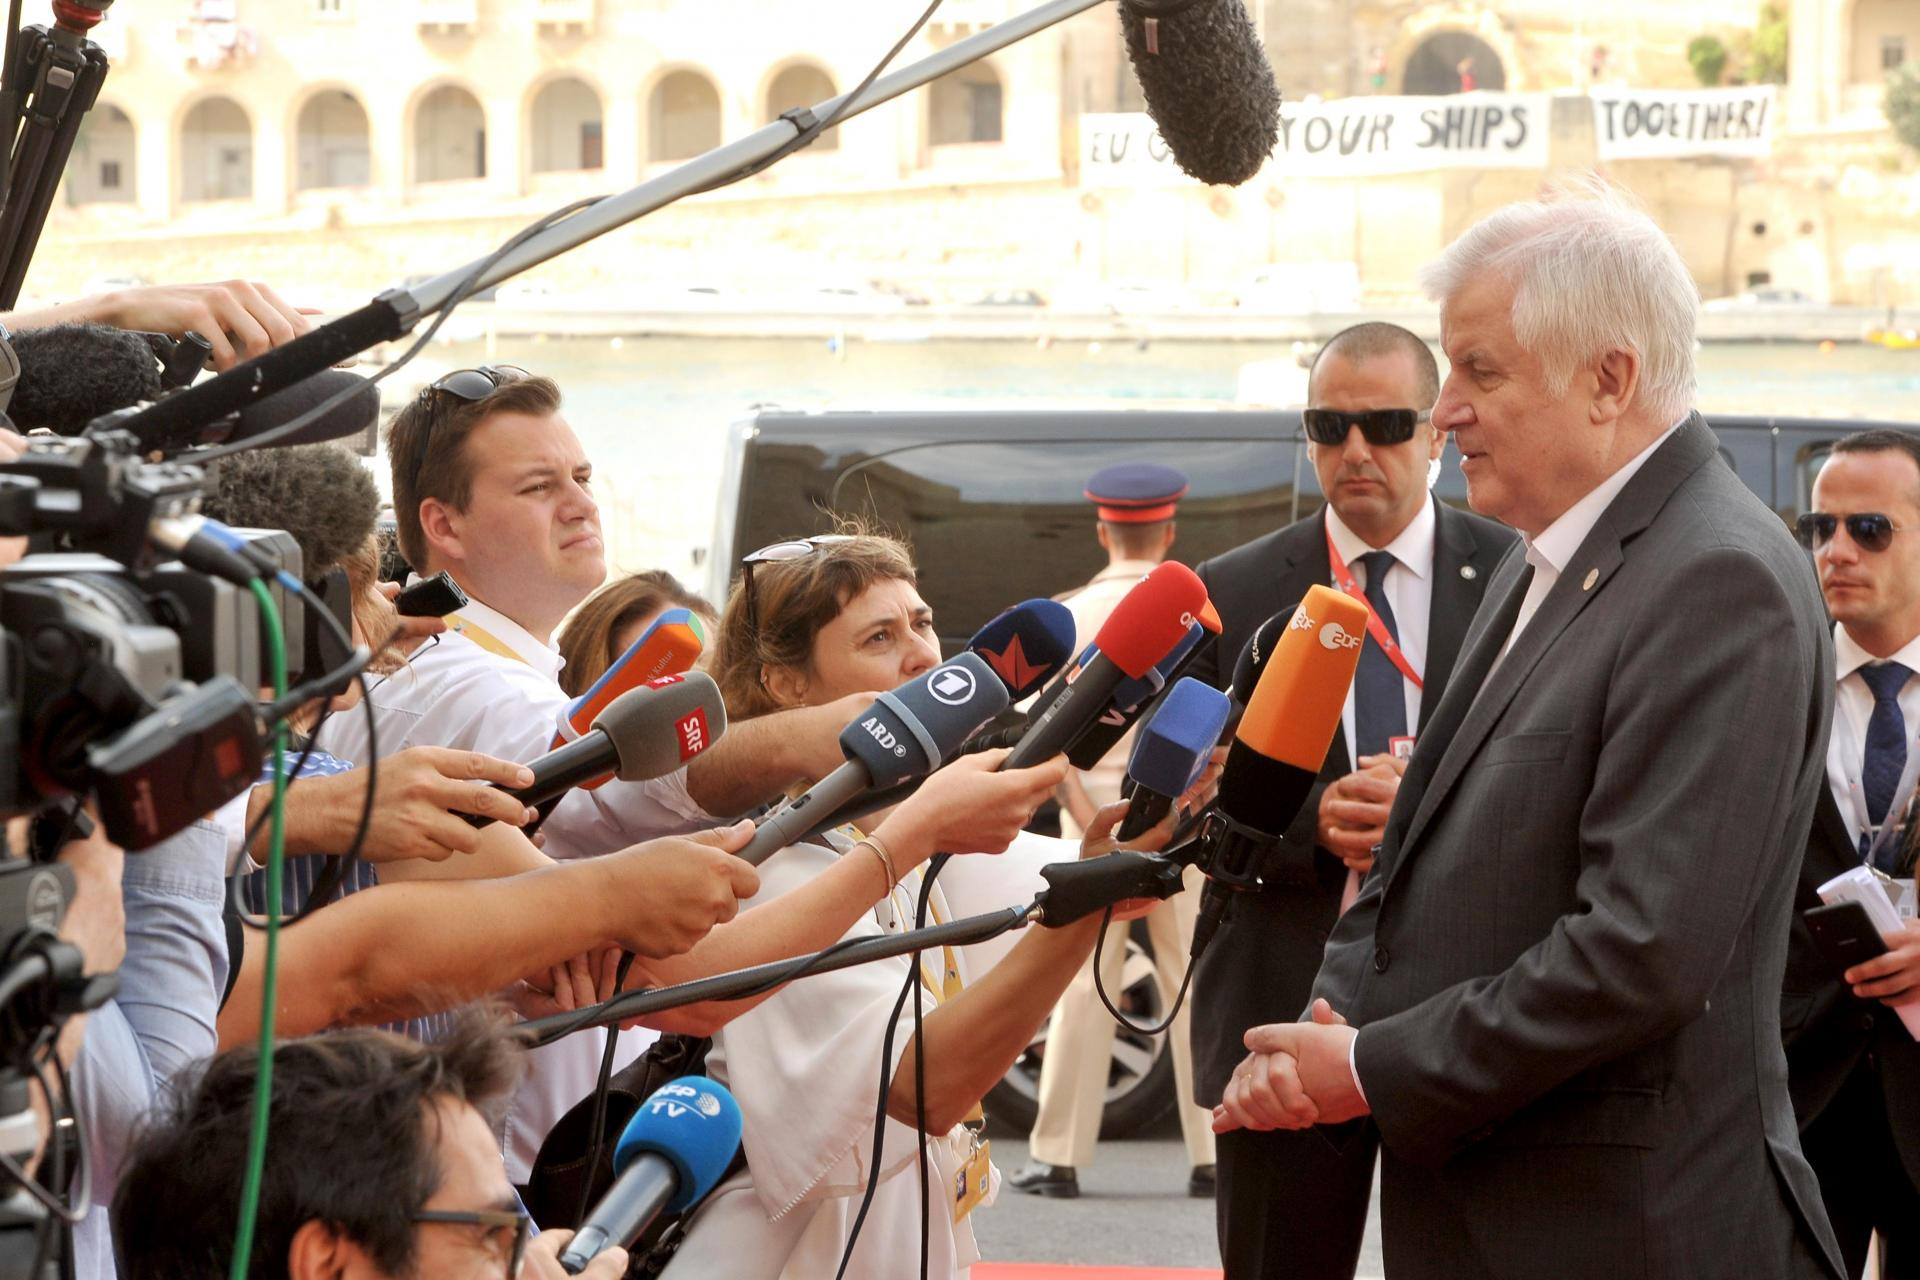 German minister Horst Seehofer speaks to the press earlier in the day. Photo: Chris Sant Fournier